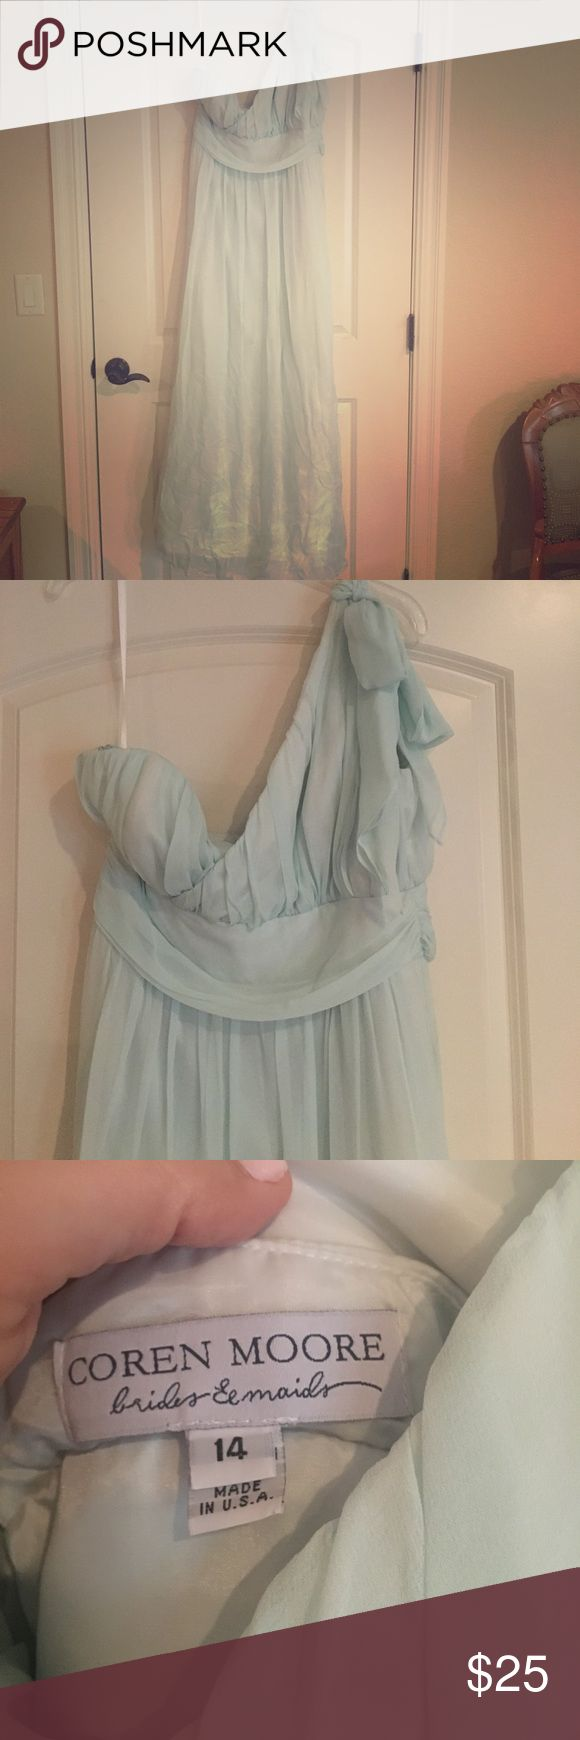 BHLDN dress Soft blue, never worn (wedding didn't happen), not altered . Comes from a clean, smoke free, pet free home. Coren Moore BHLDN Dresses